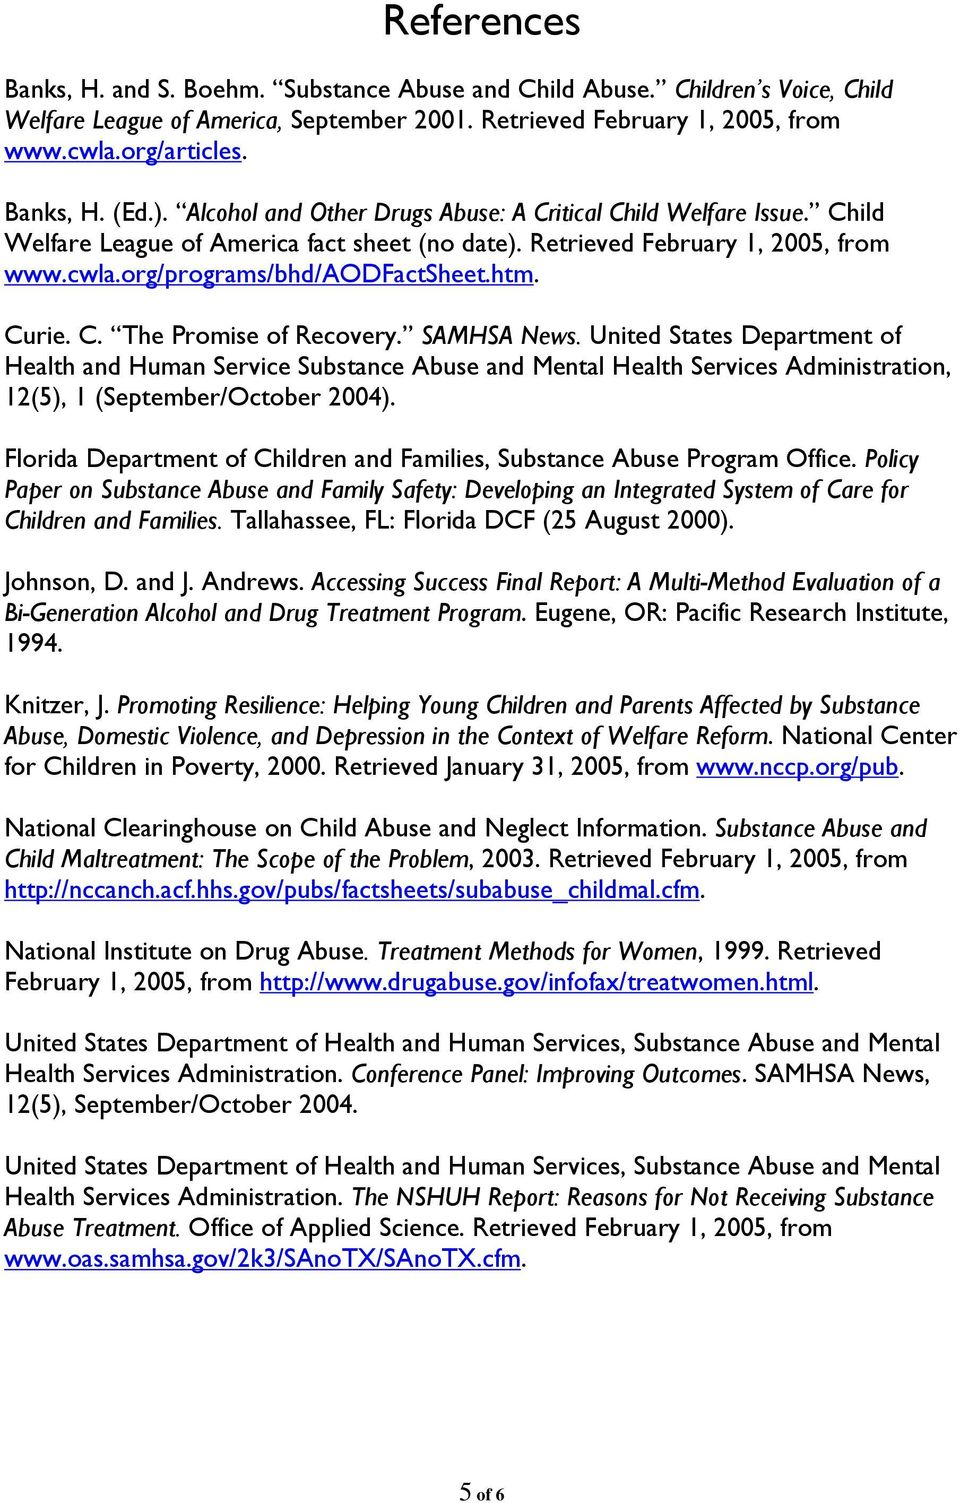 Curie. C. The Promise of Recovery. SAMHSA News. United States Department of Health and Human Service Substance Abuse and Mental Health Services Administration, 12(5), 1 (September/October 2004).